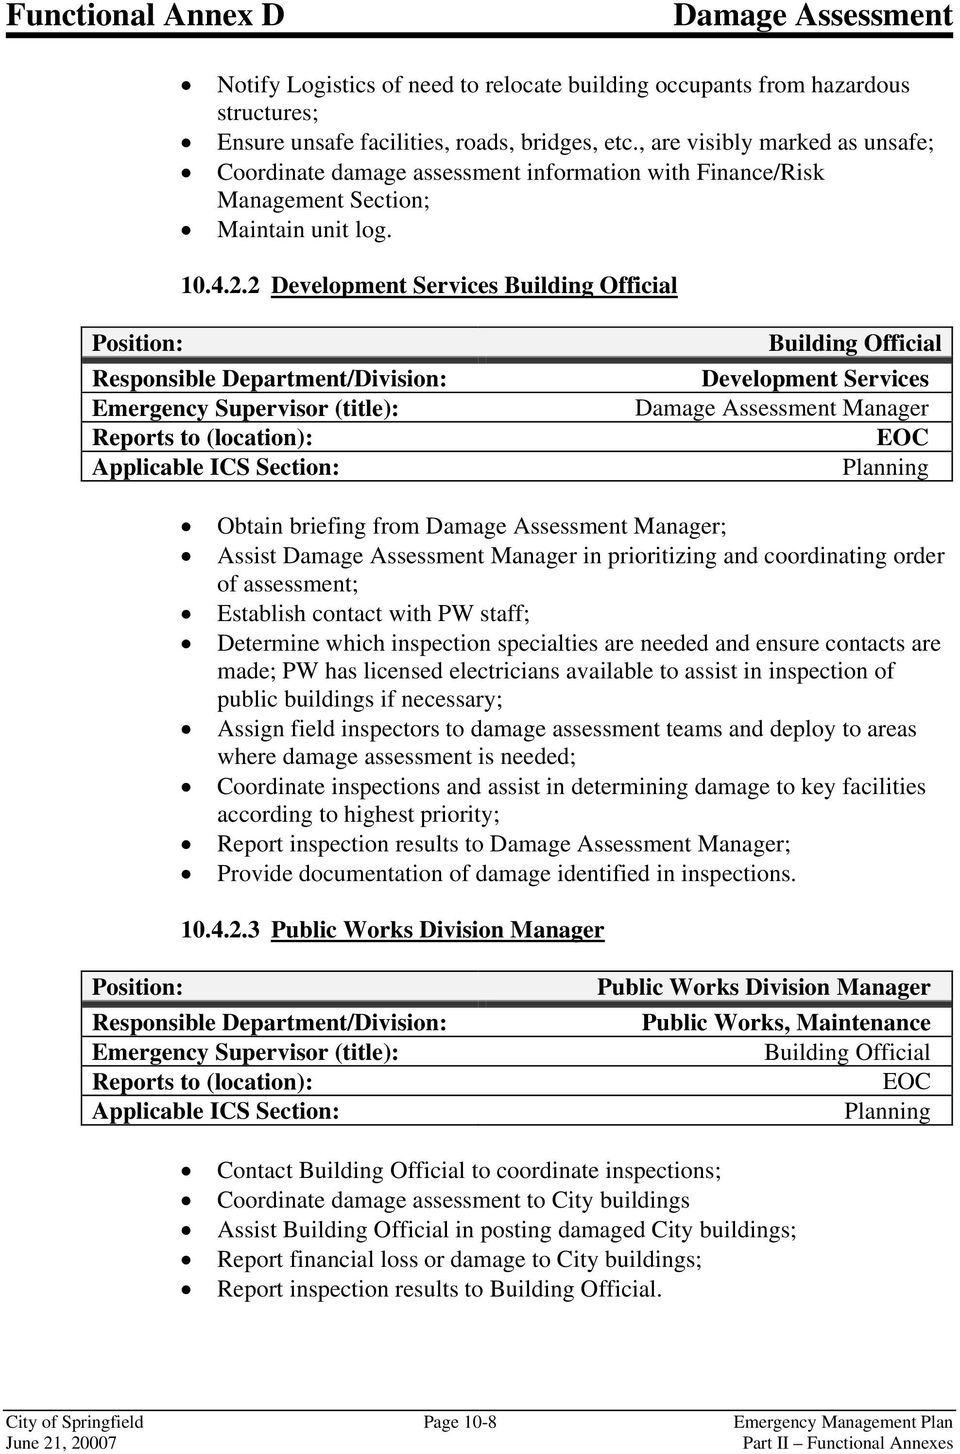 2 Development Services Building Official Position: Responsible Department/Division: Emergency Supervisor (title): Reports to (location): Applicable ICS Section: Building Official Development Services